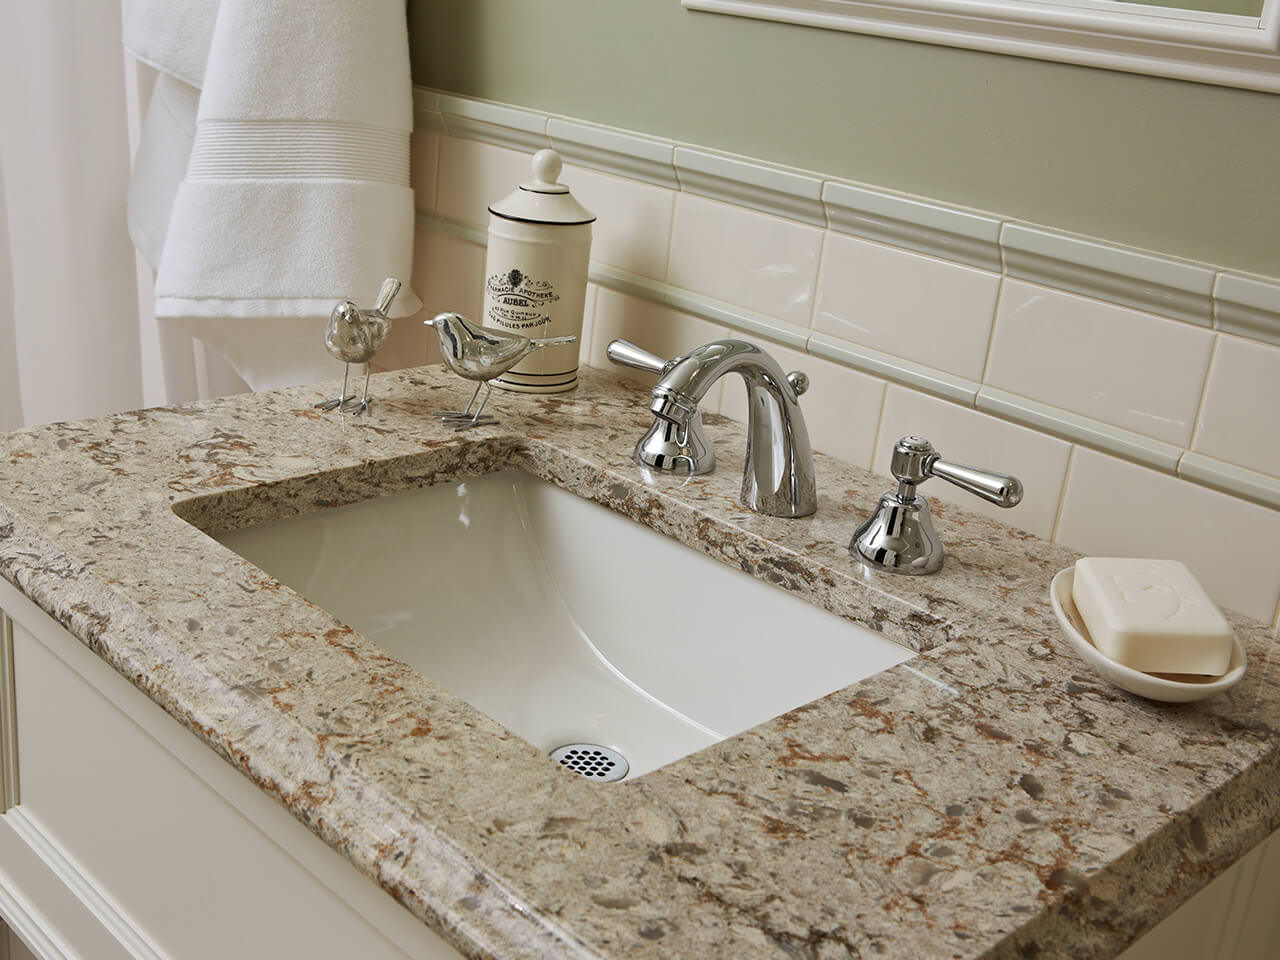 Reviews Of Quartz Countertops Windermere Cambria Quartz Countertops Cost Reviews